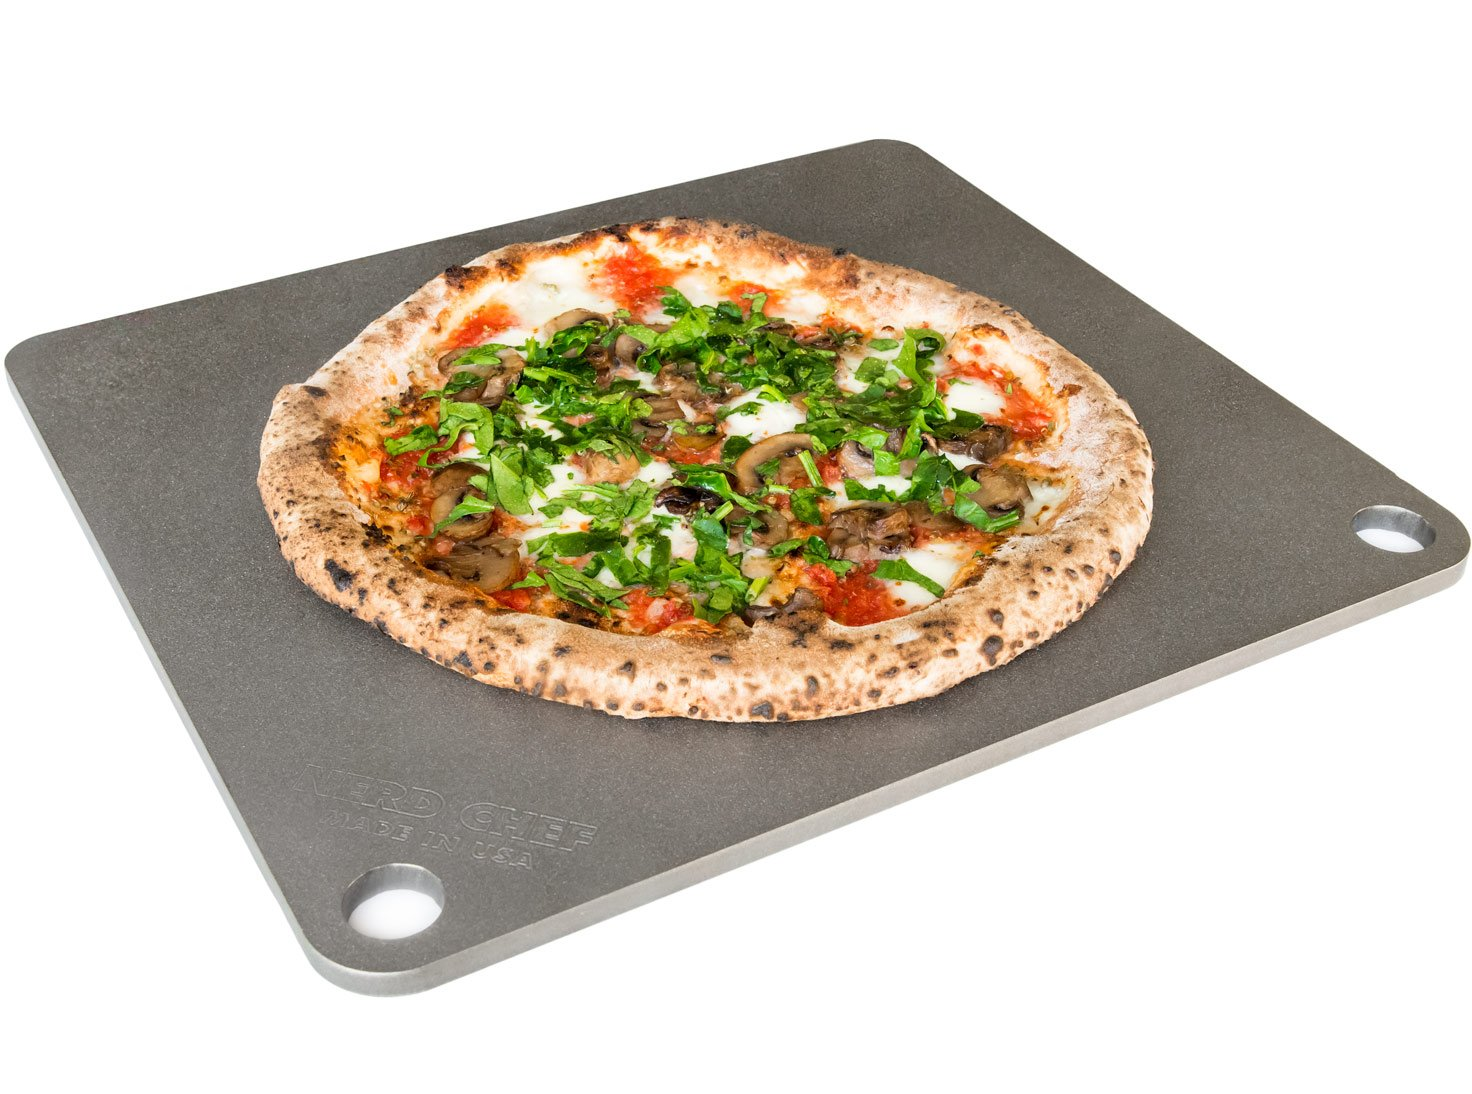 NerdChef Steel Stone - High-Performance Baking Surface for Pizza (.375'' Thick - Pro) by NerdChef